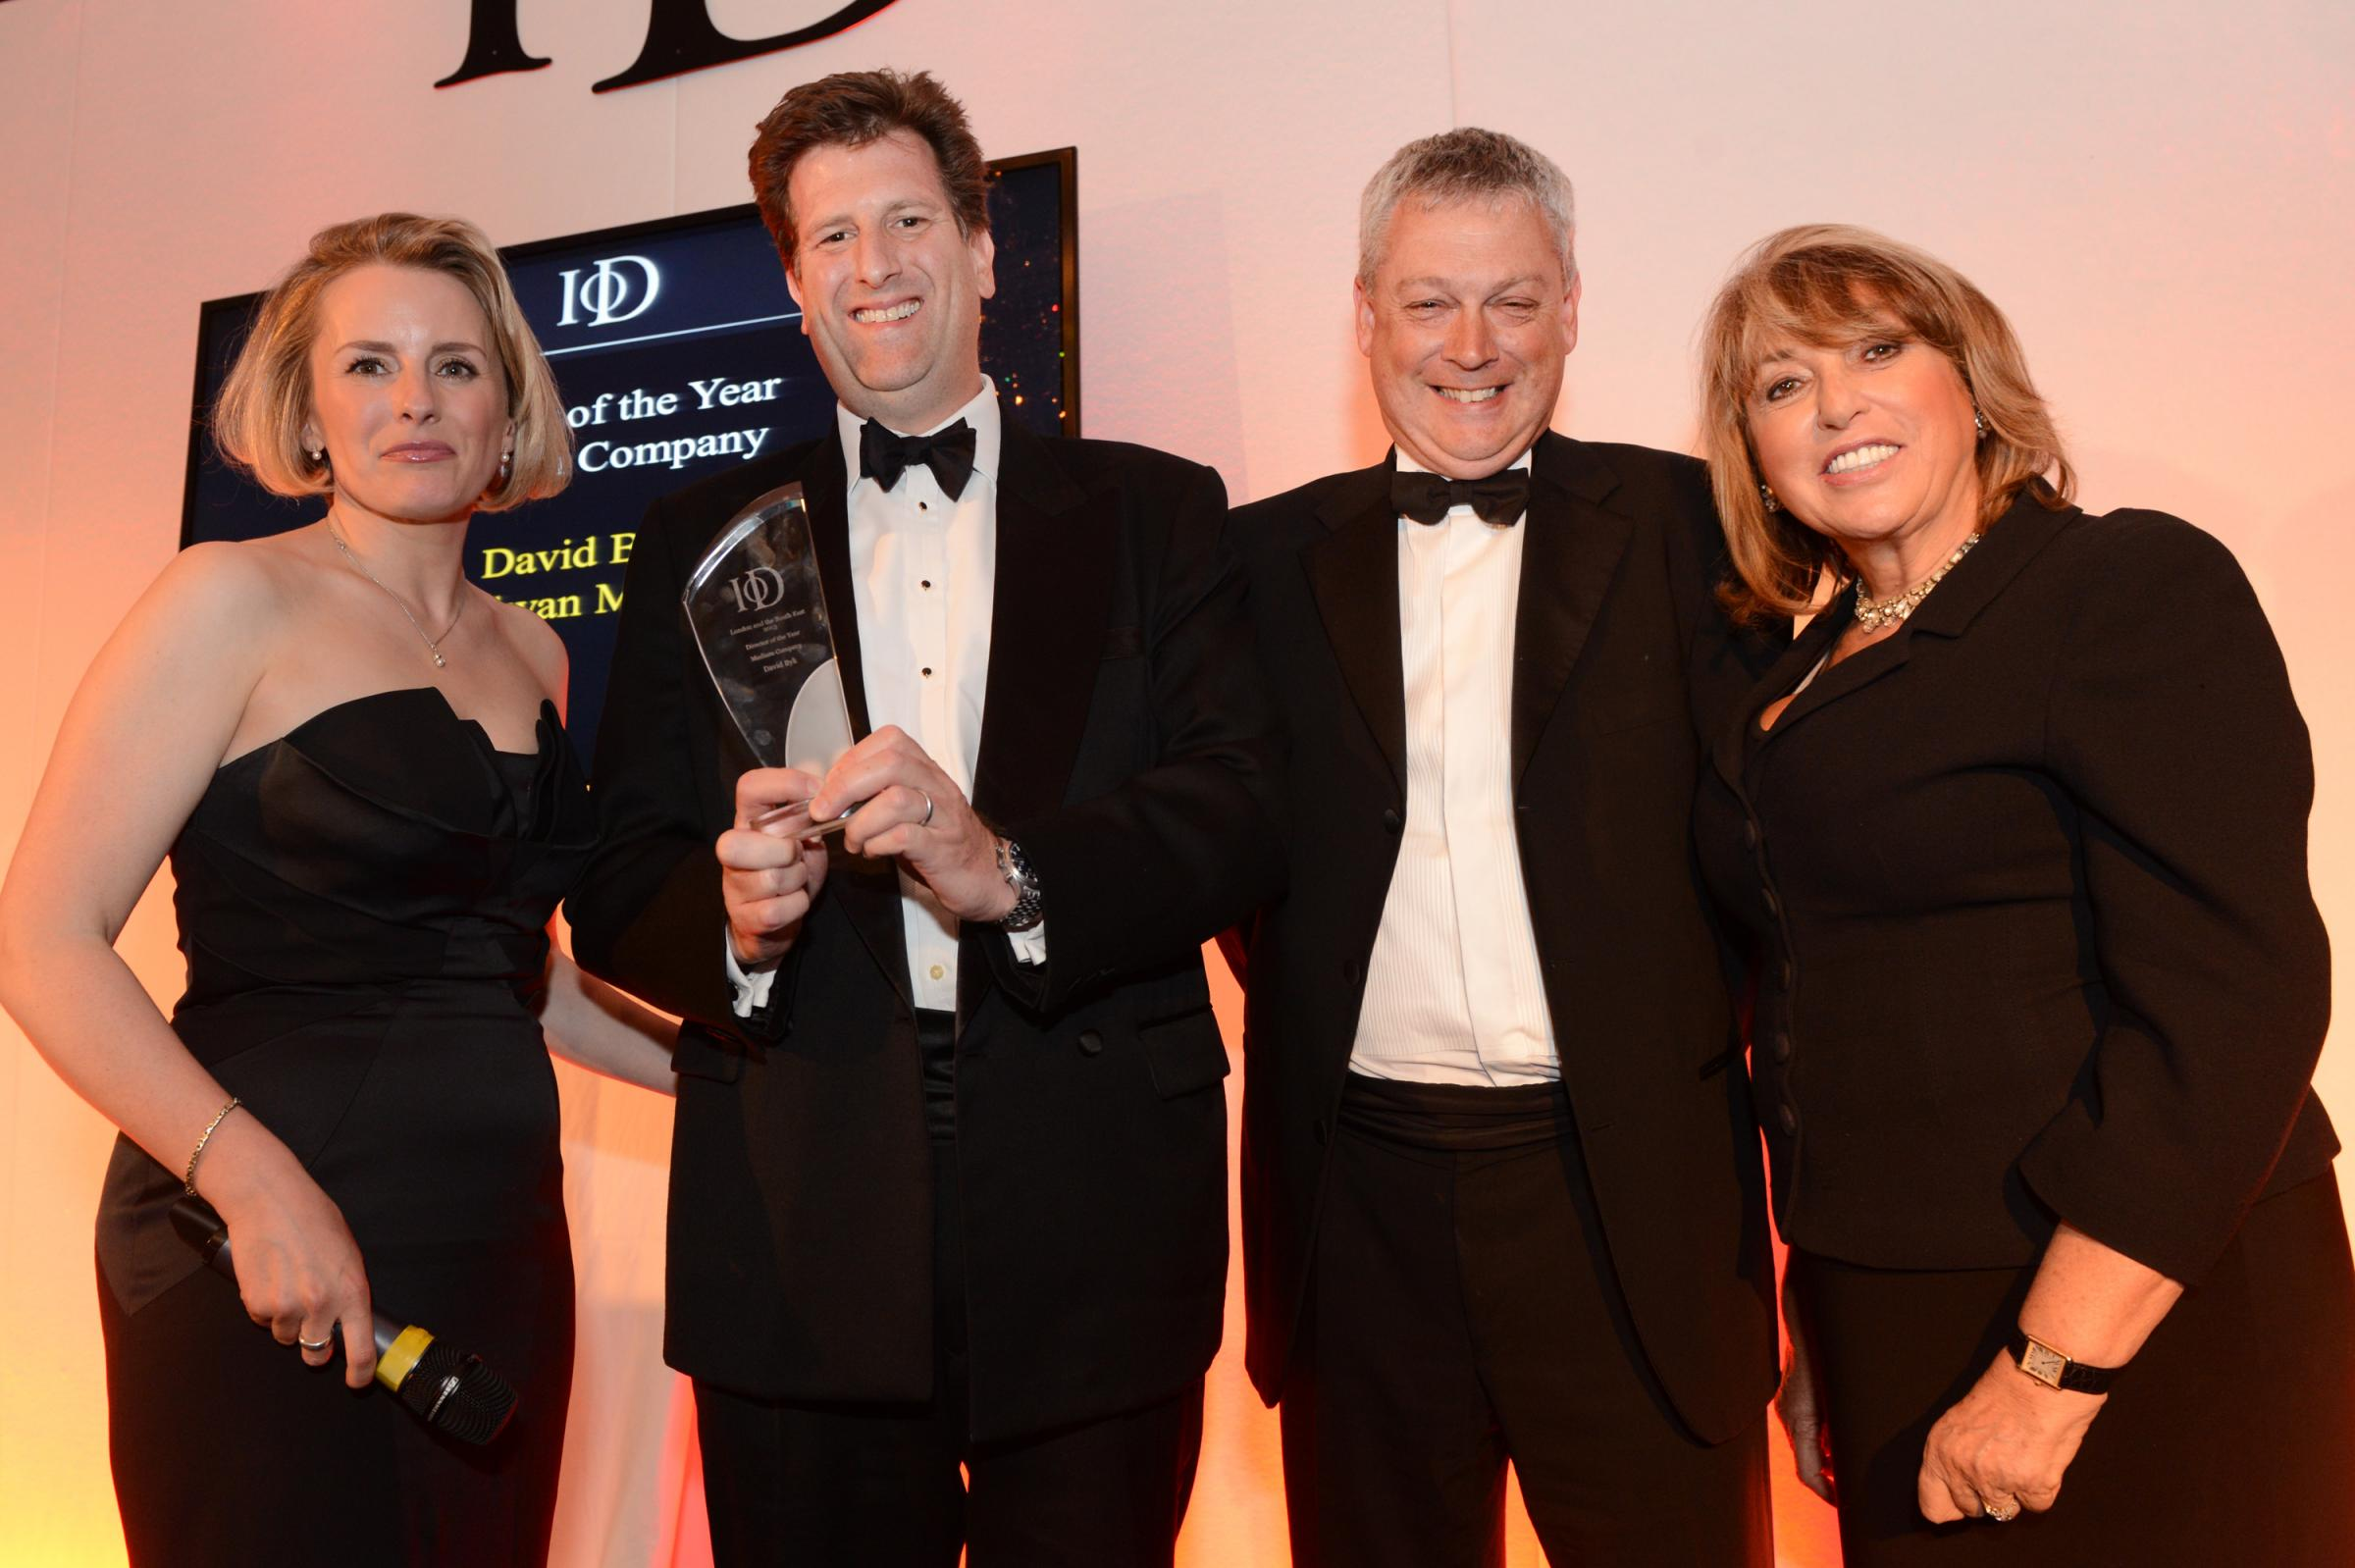 David Byk, second left, receives his award from (l-r) event host Polly Whitehouse of Channel 5 News, John Minards, South East Regional Leader of headline sponsors PricewaterhouseCoopers LLP, an